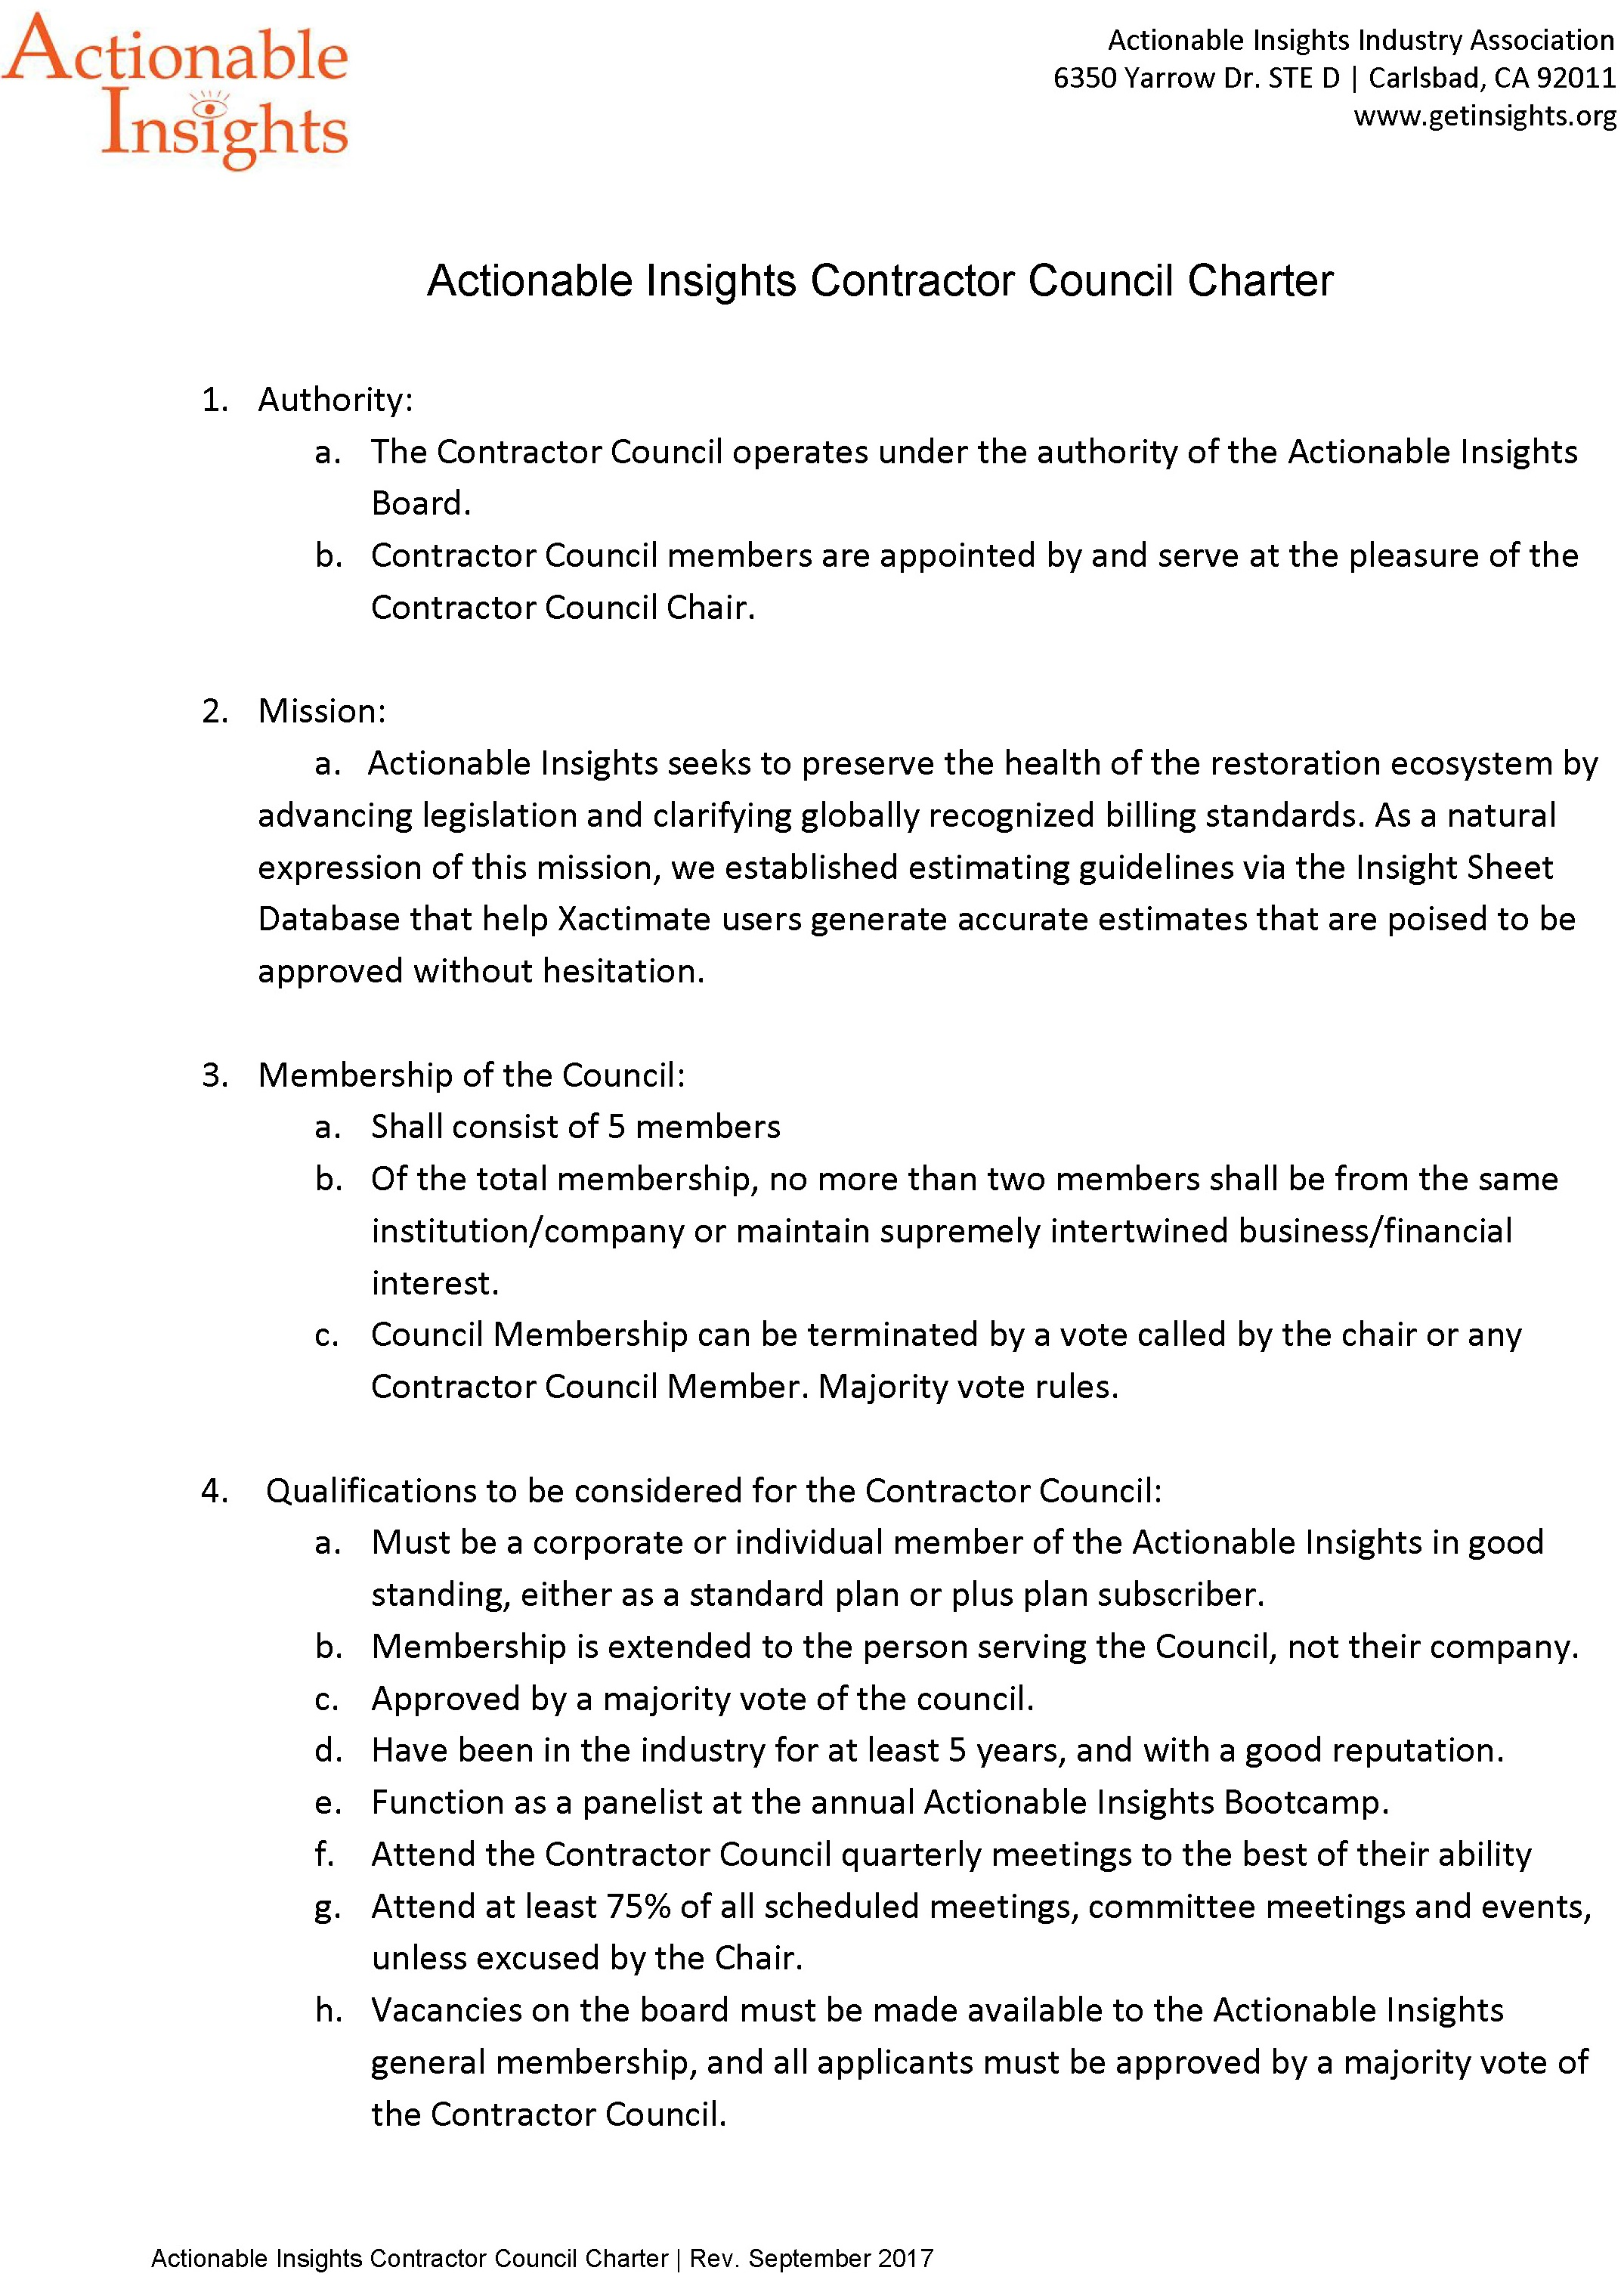 Contractor Council Charter (page 1 of 2)